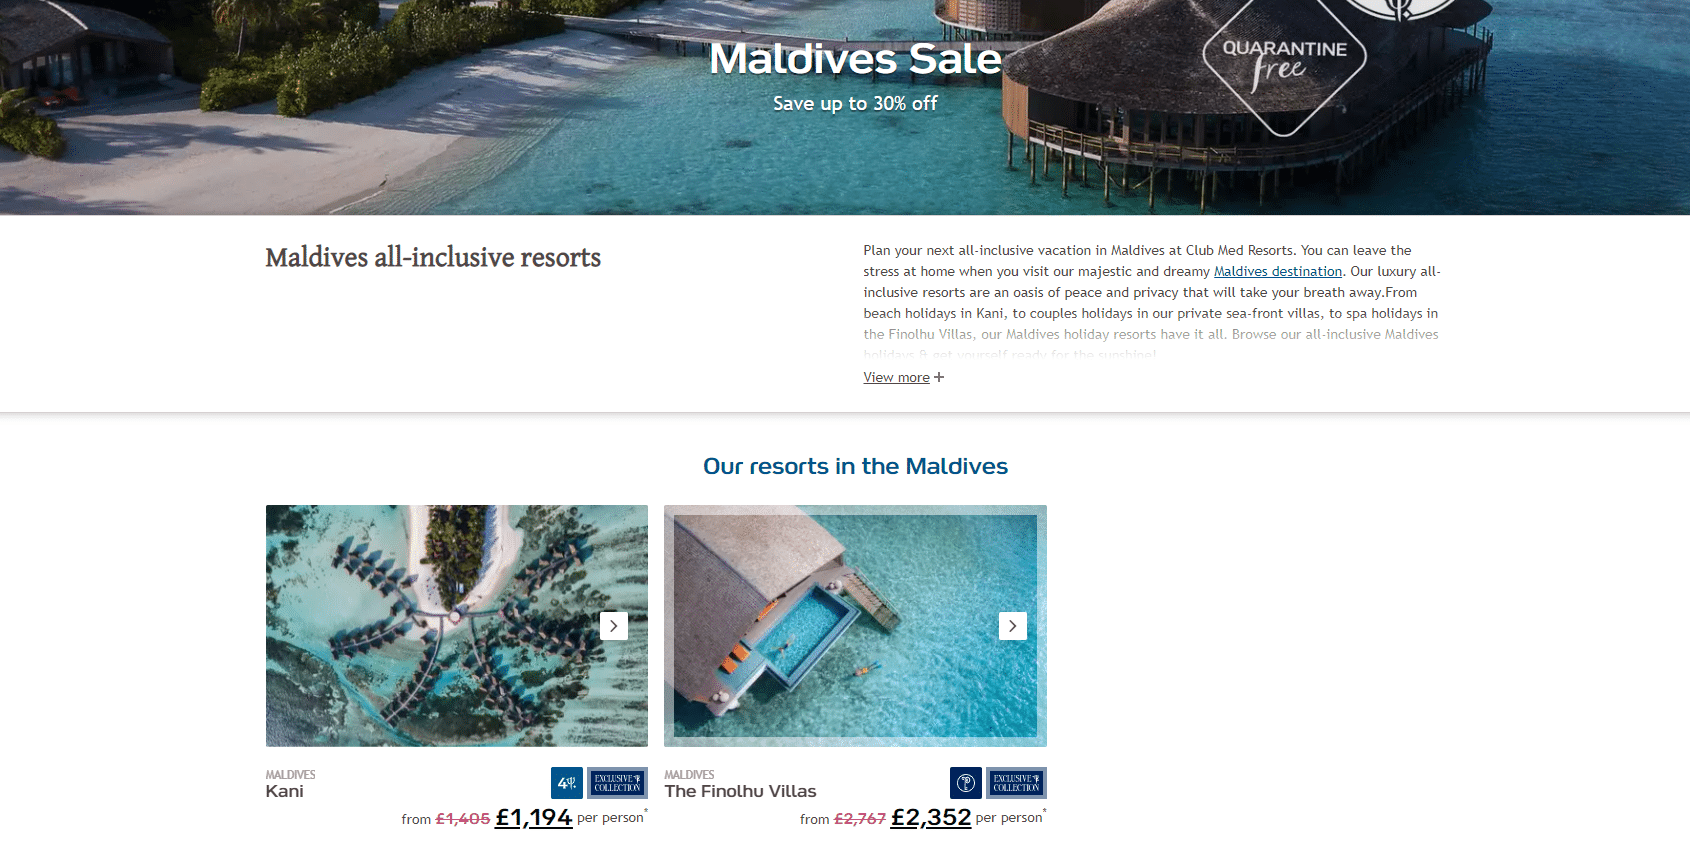 club med up to 30% off deal